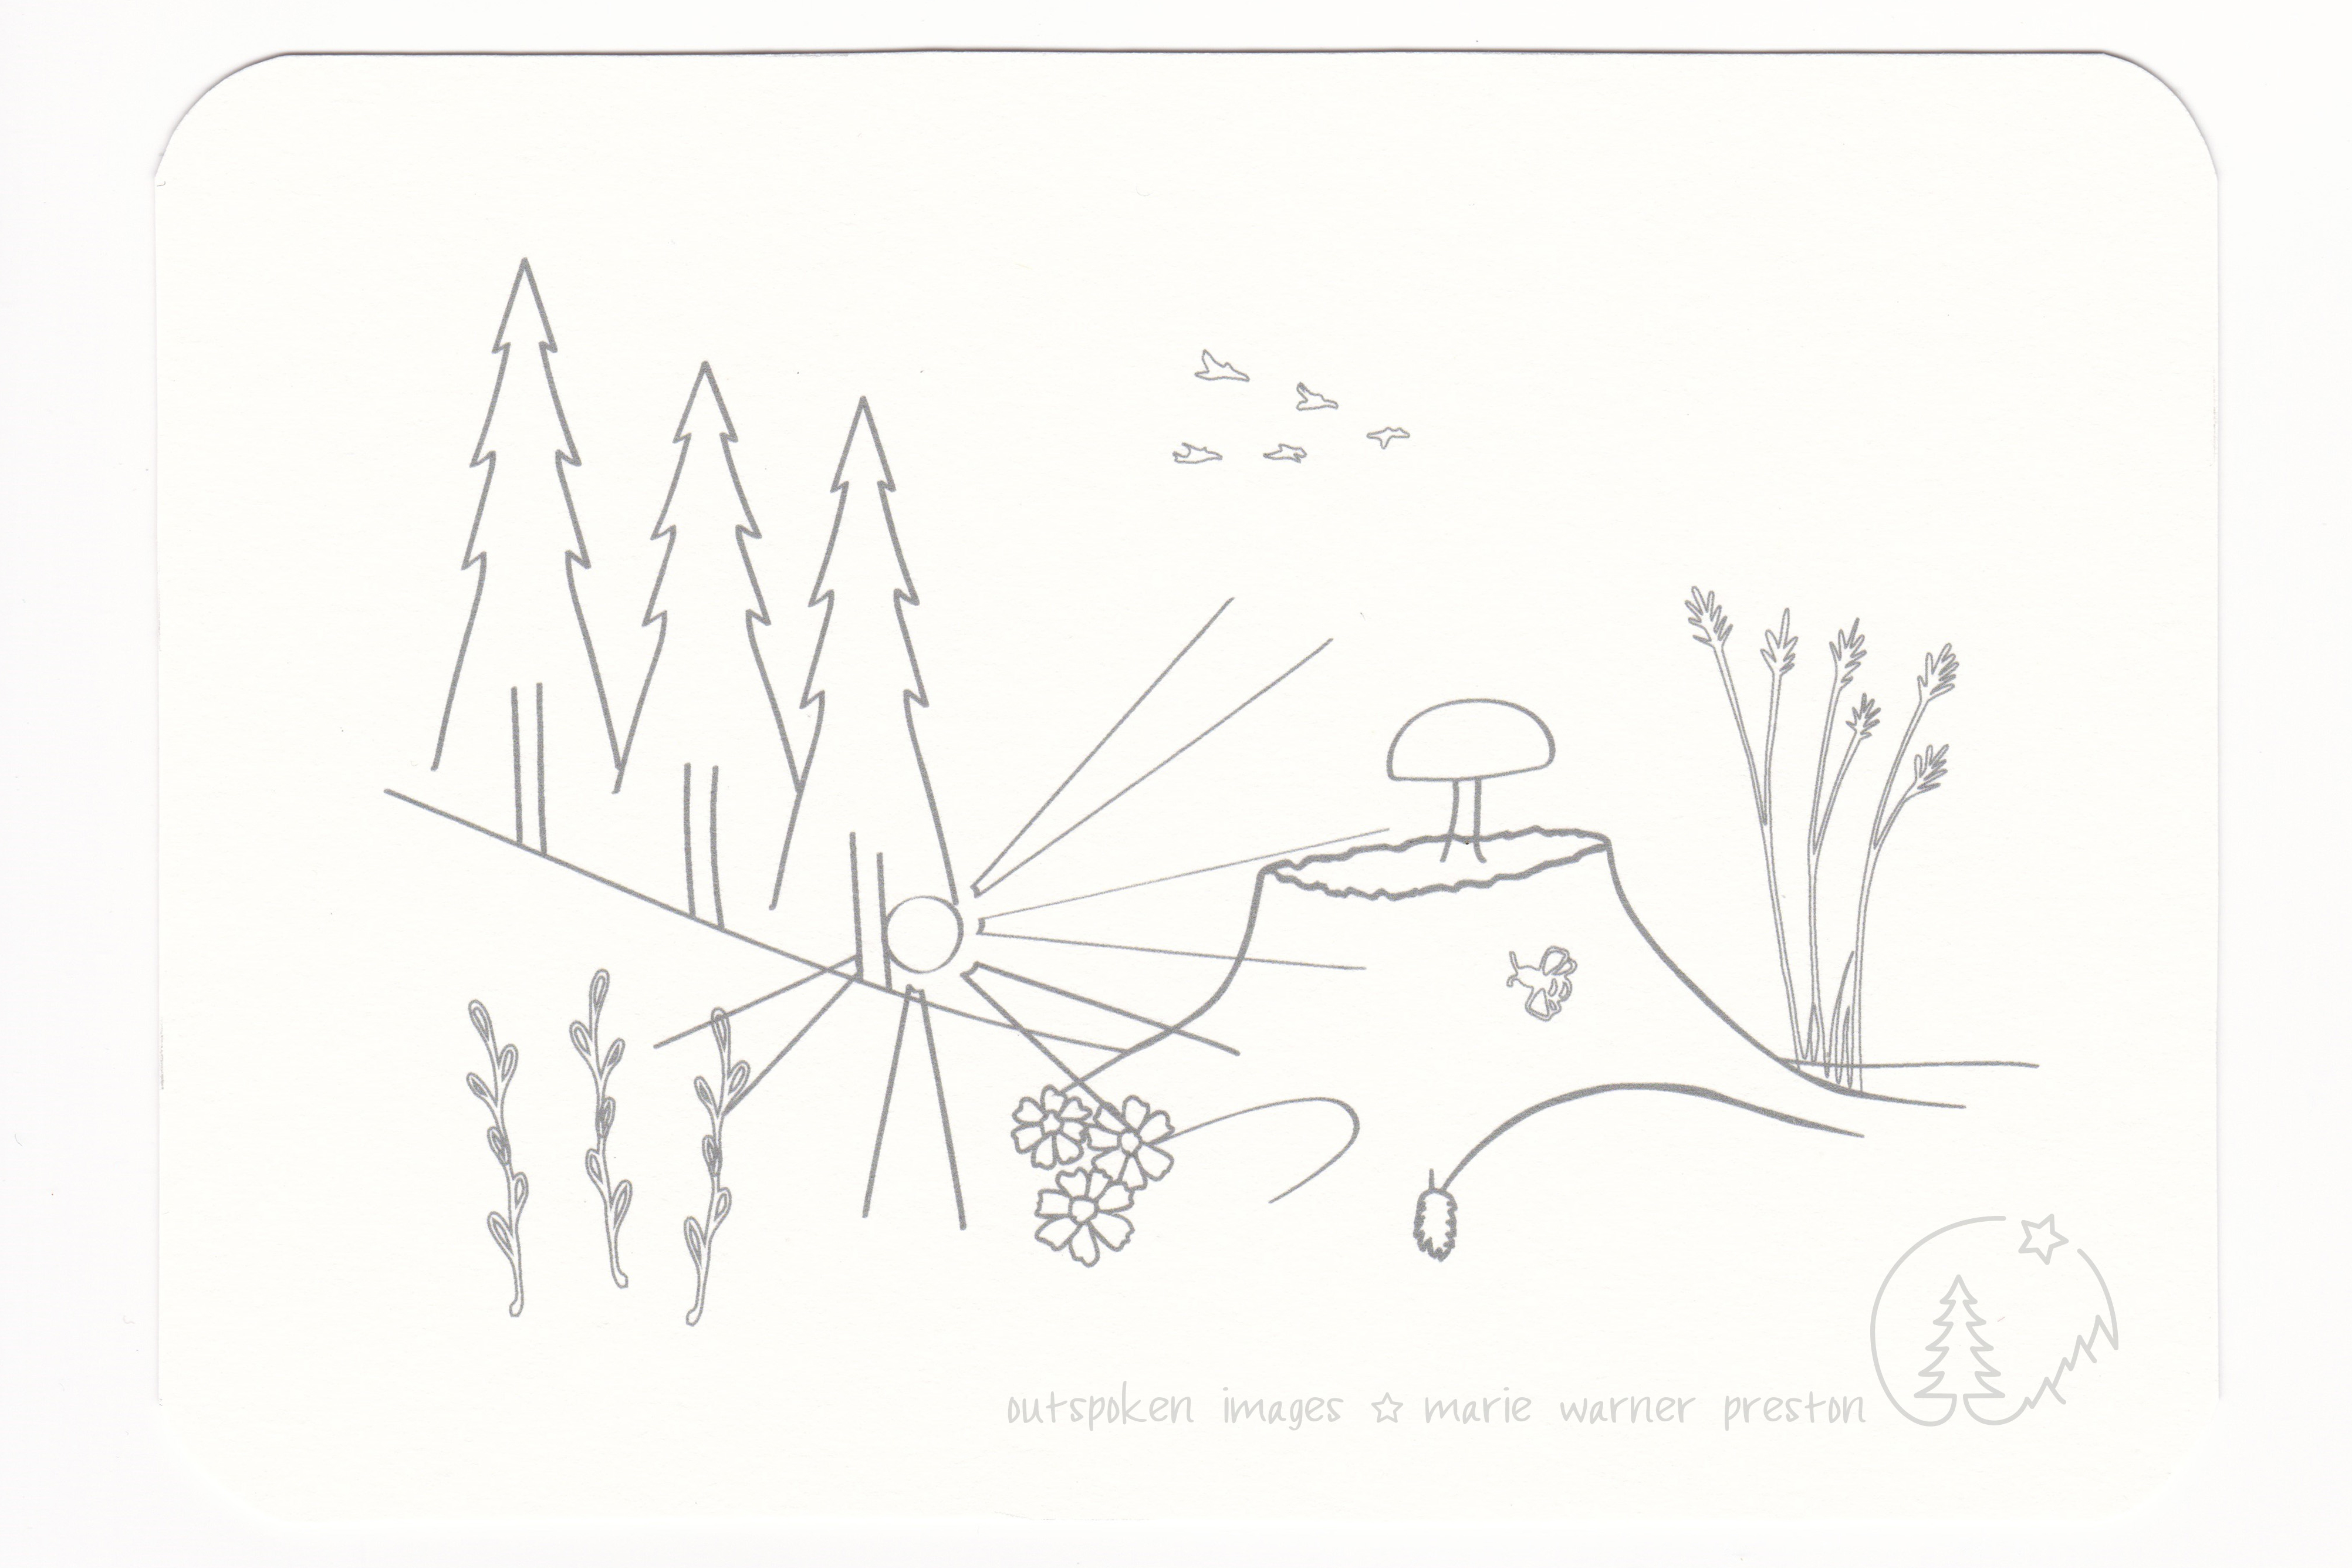 Forest scene outline: Sunrays through evergreen trees and blueberries. Tree stump with mushroom, flowers, tall grass. Birds and bee. ©2021 Outspoken Images by Marie Warner Preston